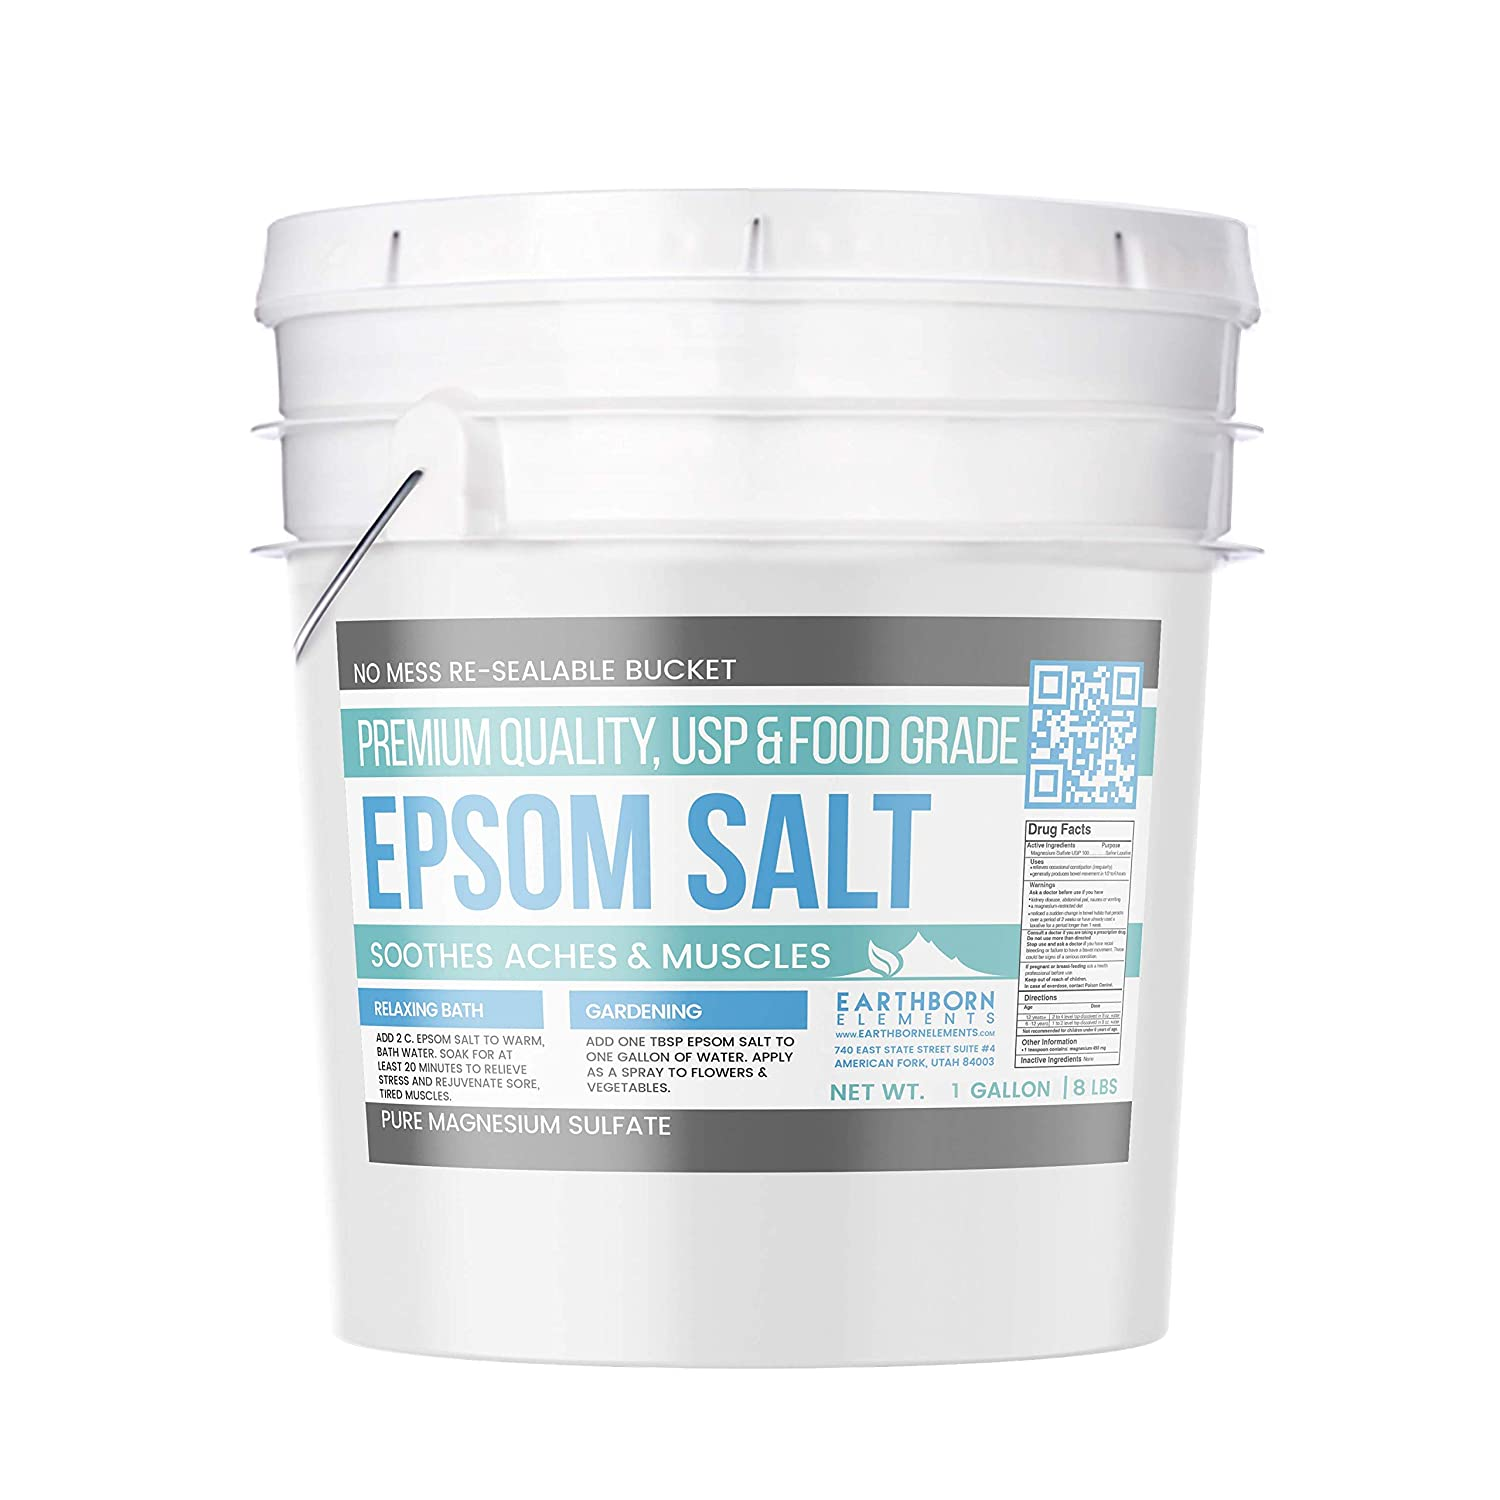 Epsom Salt, Magnesium Sulfate, Soaking Solution, All-Natural, Highest Quality & Purity, USP Grade, Resealable Bucket with Lid, Keeps Out Moisture, (1 Gallon (8 lb)(128 oz)) Earthborn Element